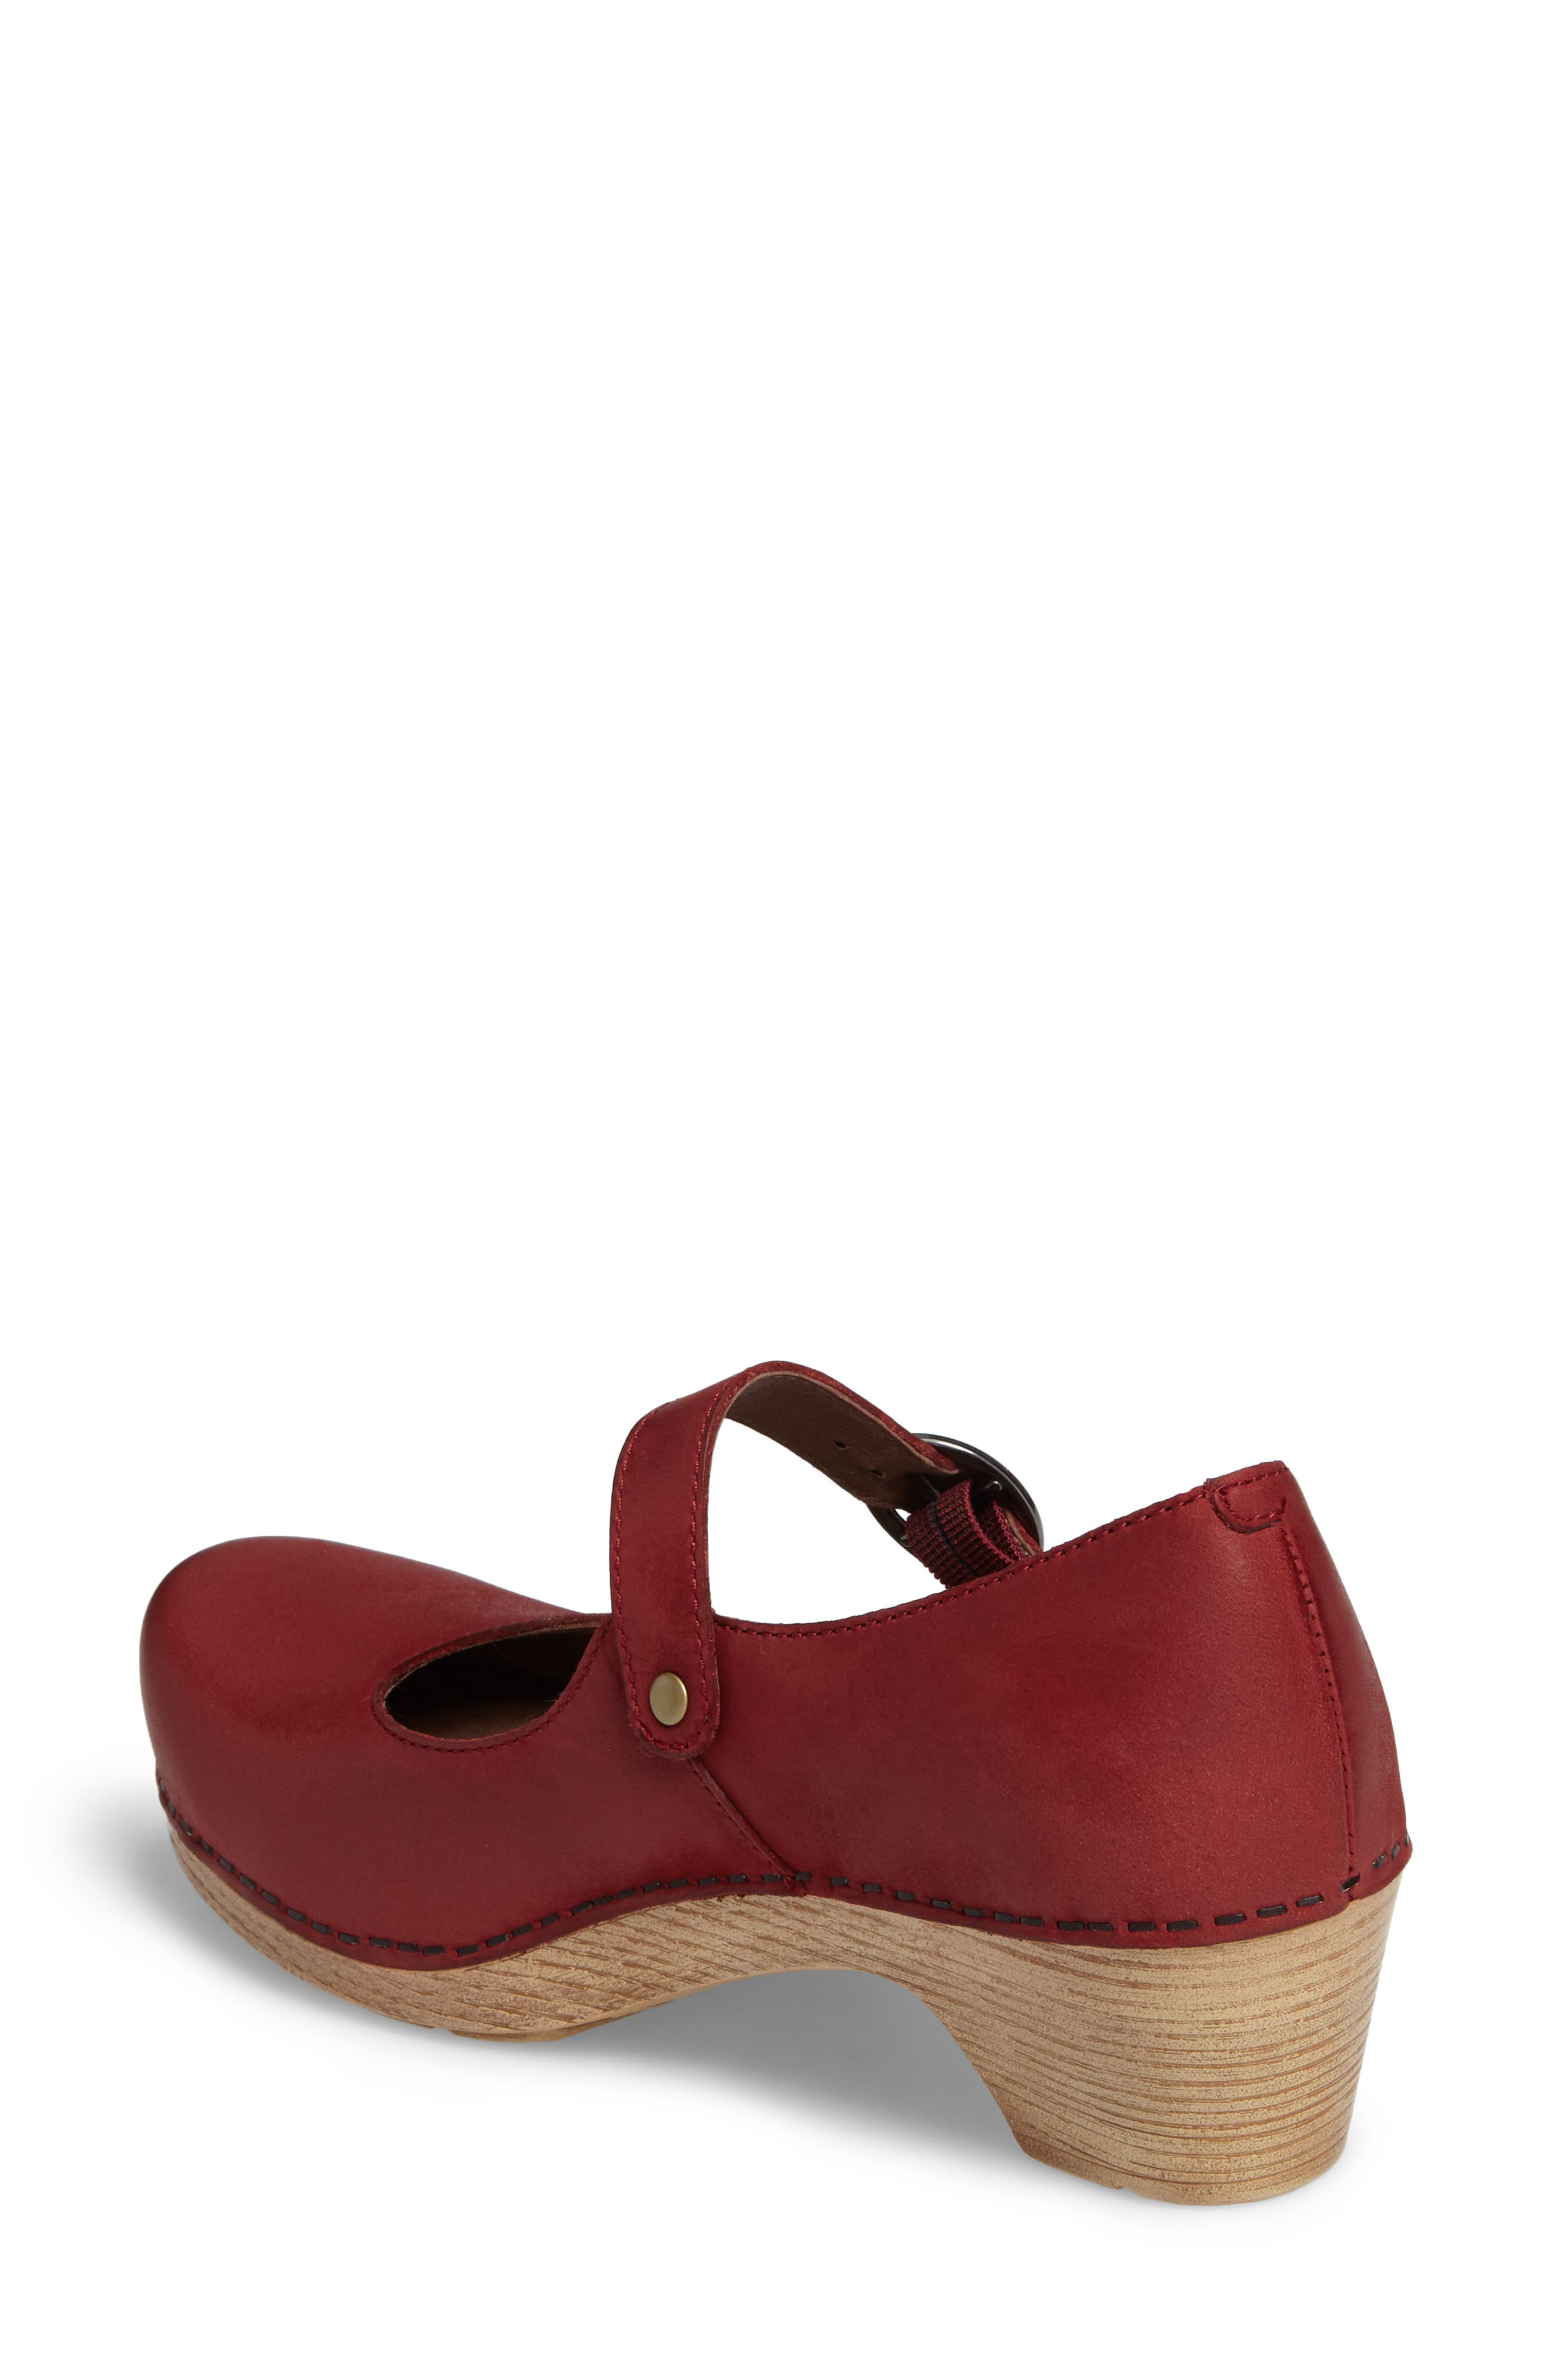 Missy Mary Jane Pump,                             Alternate thumbnail 2, color,                             Red Leather